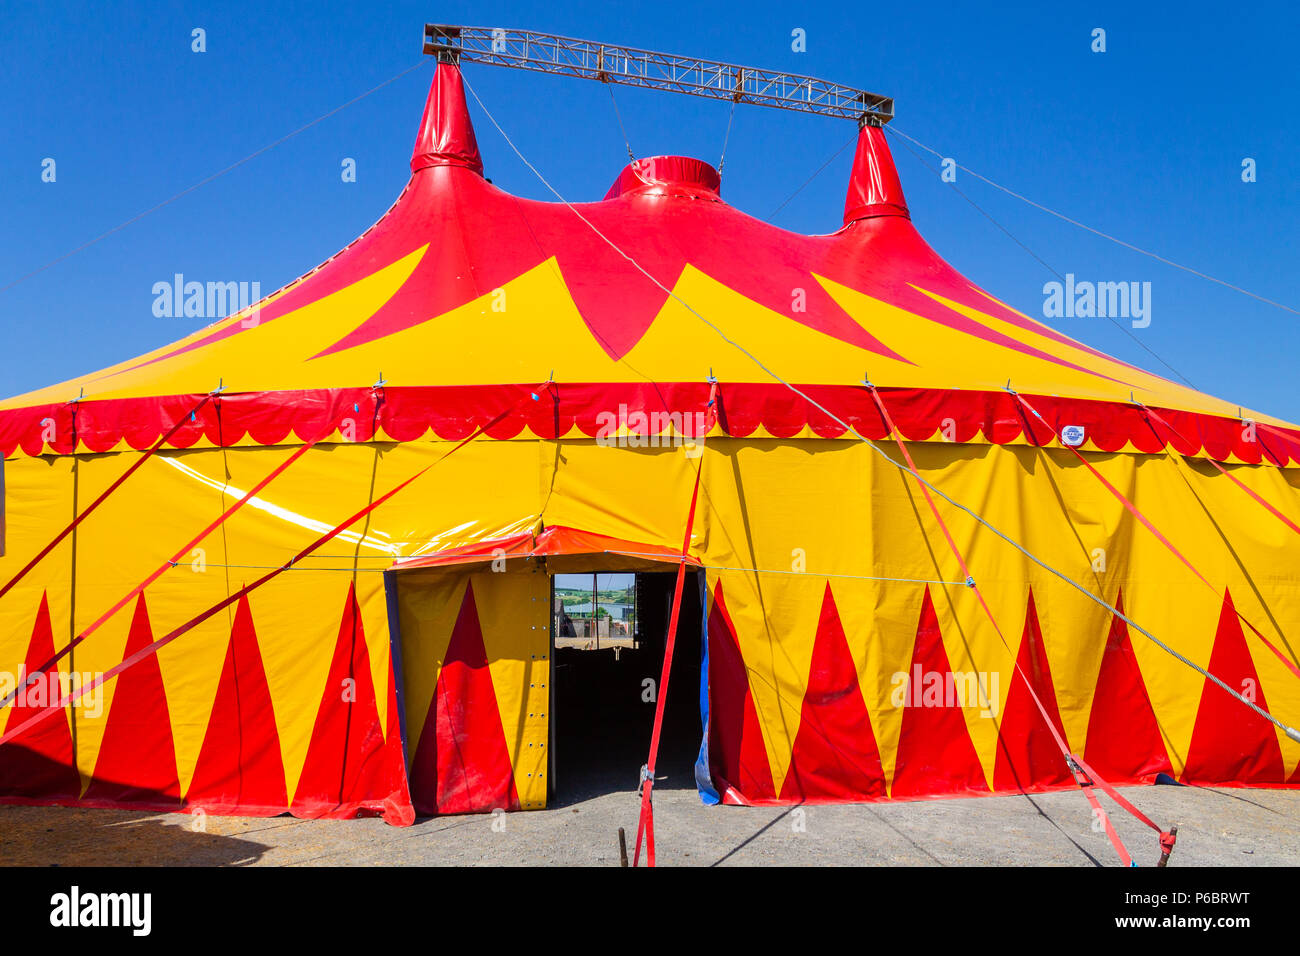 circus-tent-or-big-top-with-red-and-yellow-design-standing-out-against-a-clear-blue-sky-P6BRWT.jpg